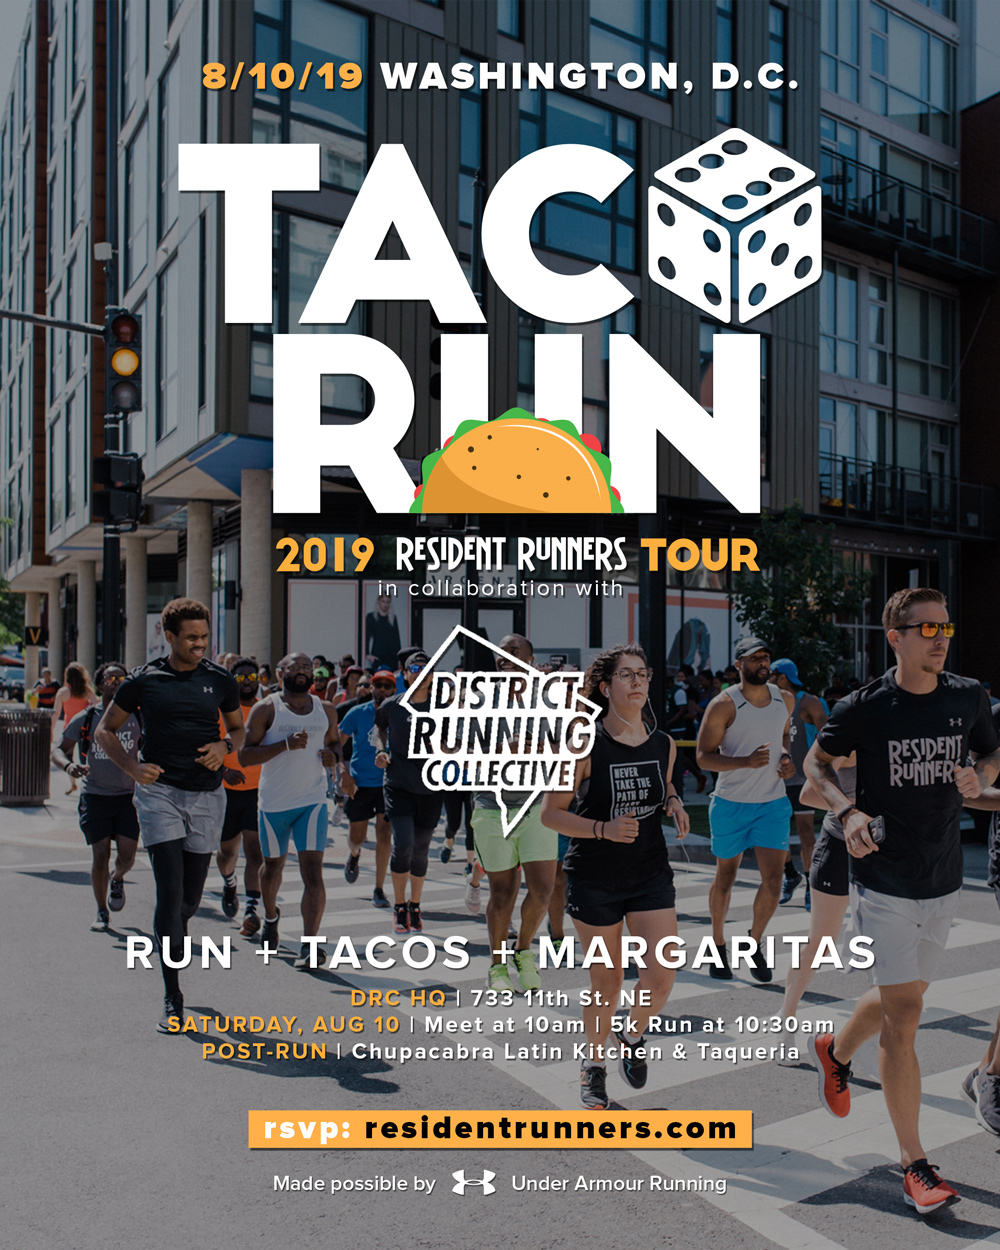 dc_taco_run_tour_flyer_v1-web.jpg